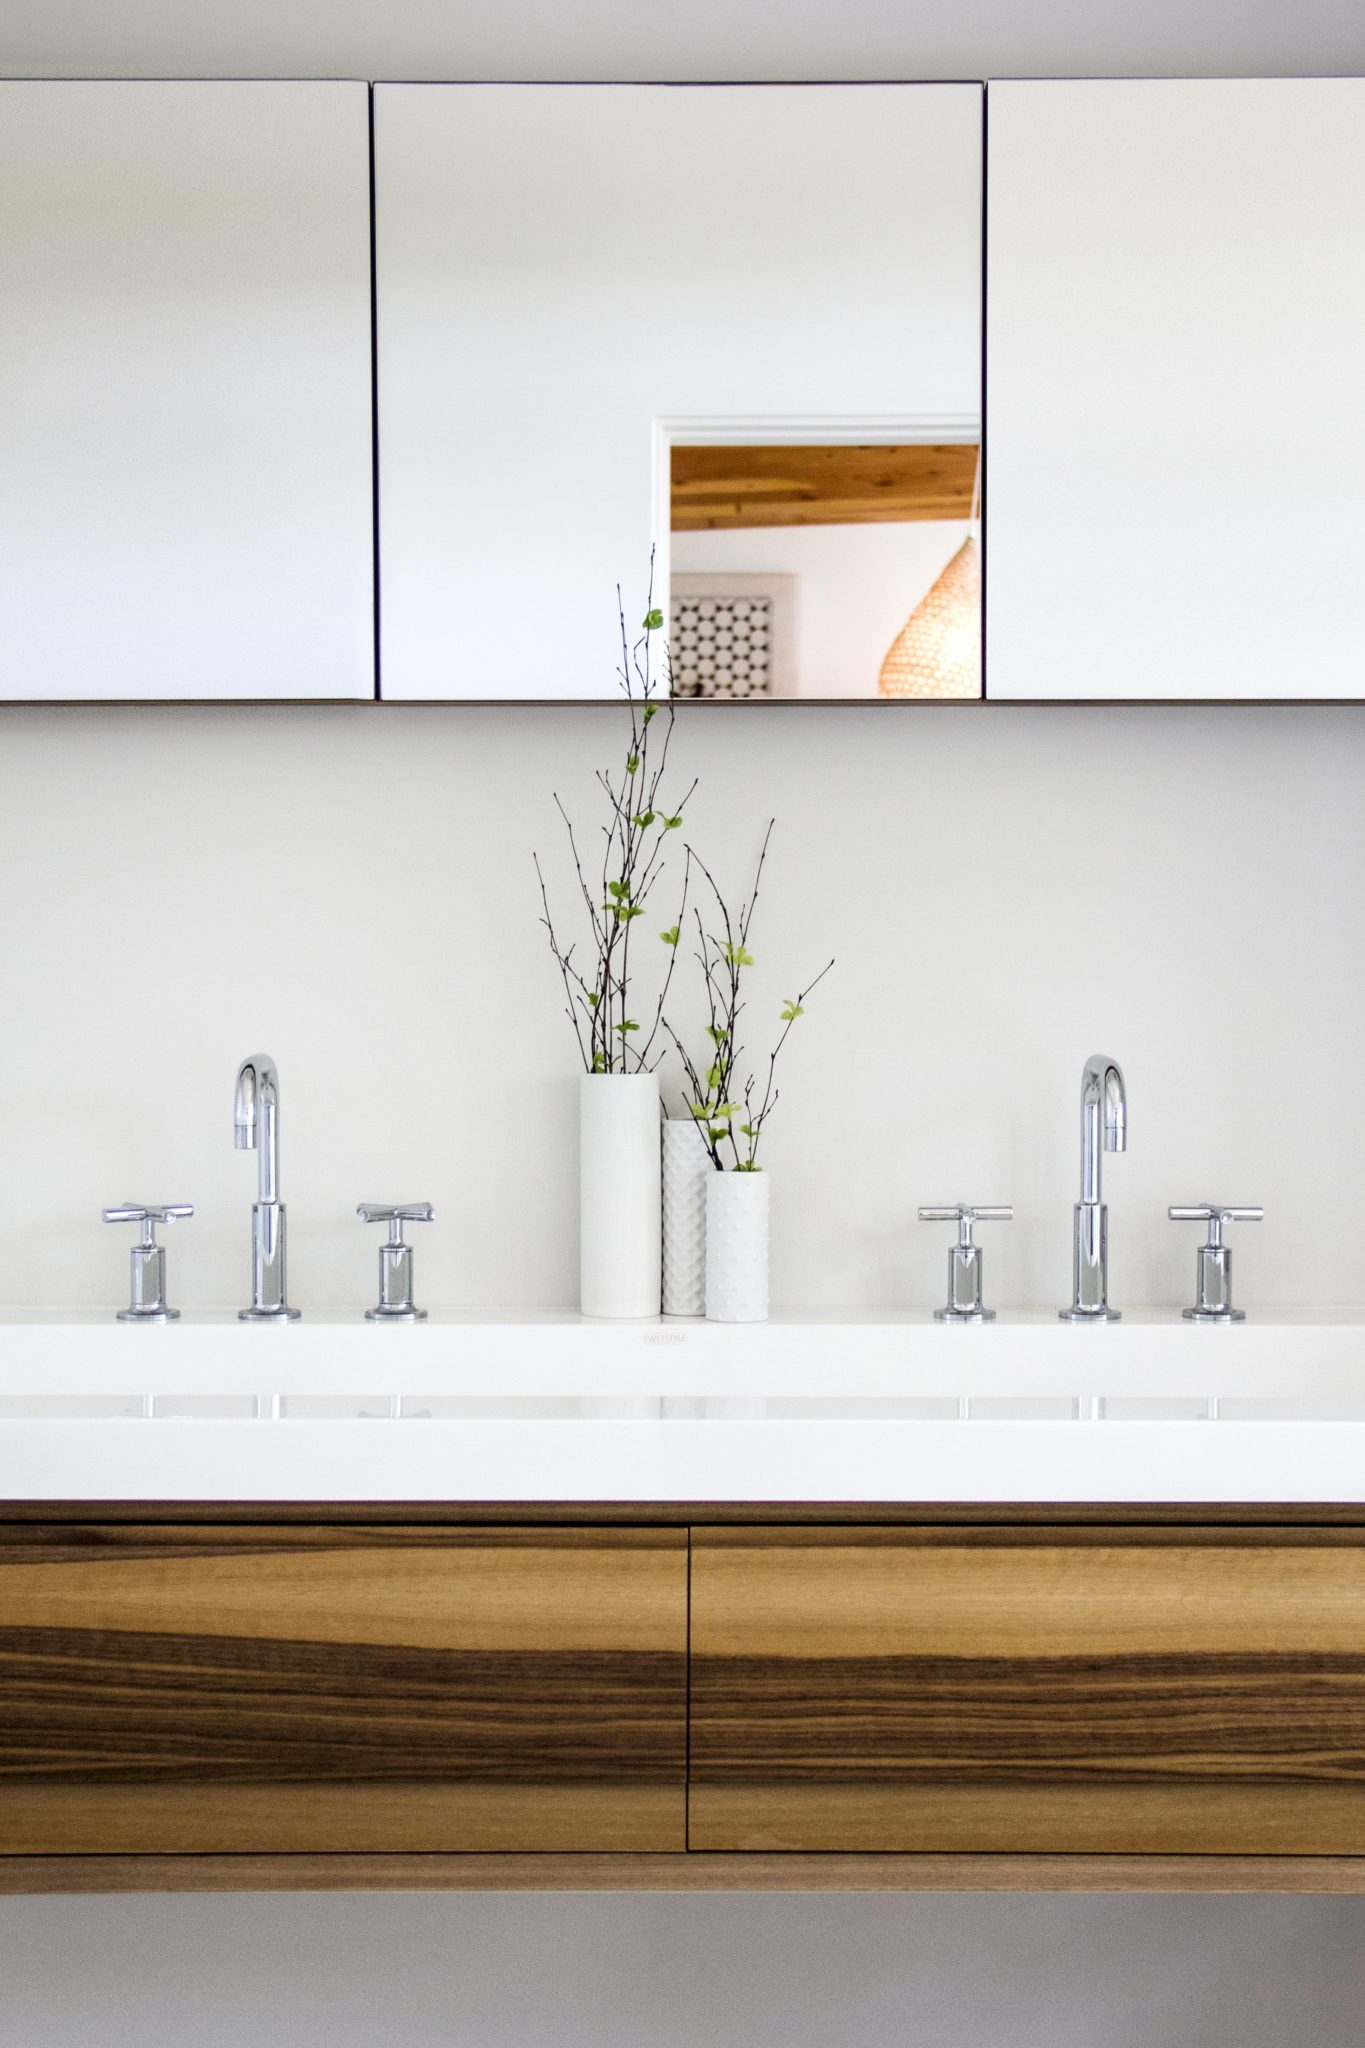 Kohler faucets and Wetstyle sinks serve as functionalaccents in the peaceful bathroom. Karma Dog Construction created the cabinetry and sourced the mirrors.